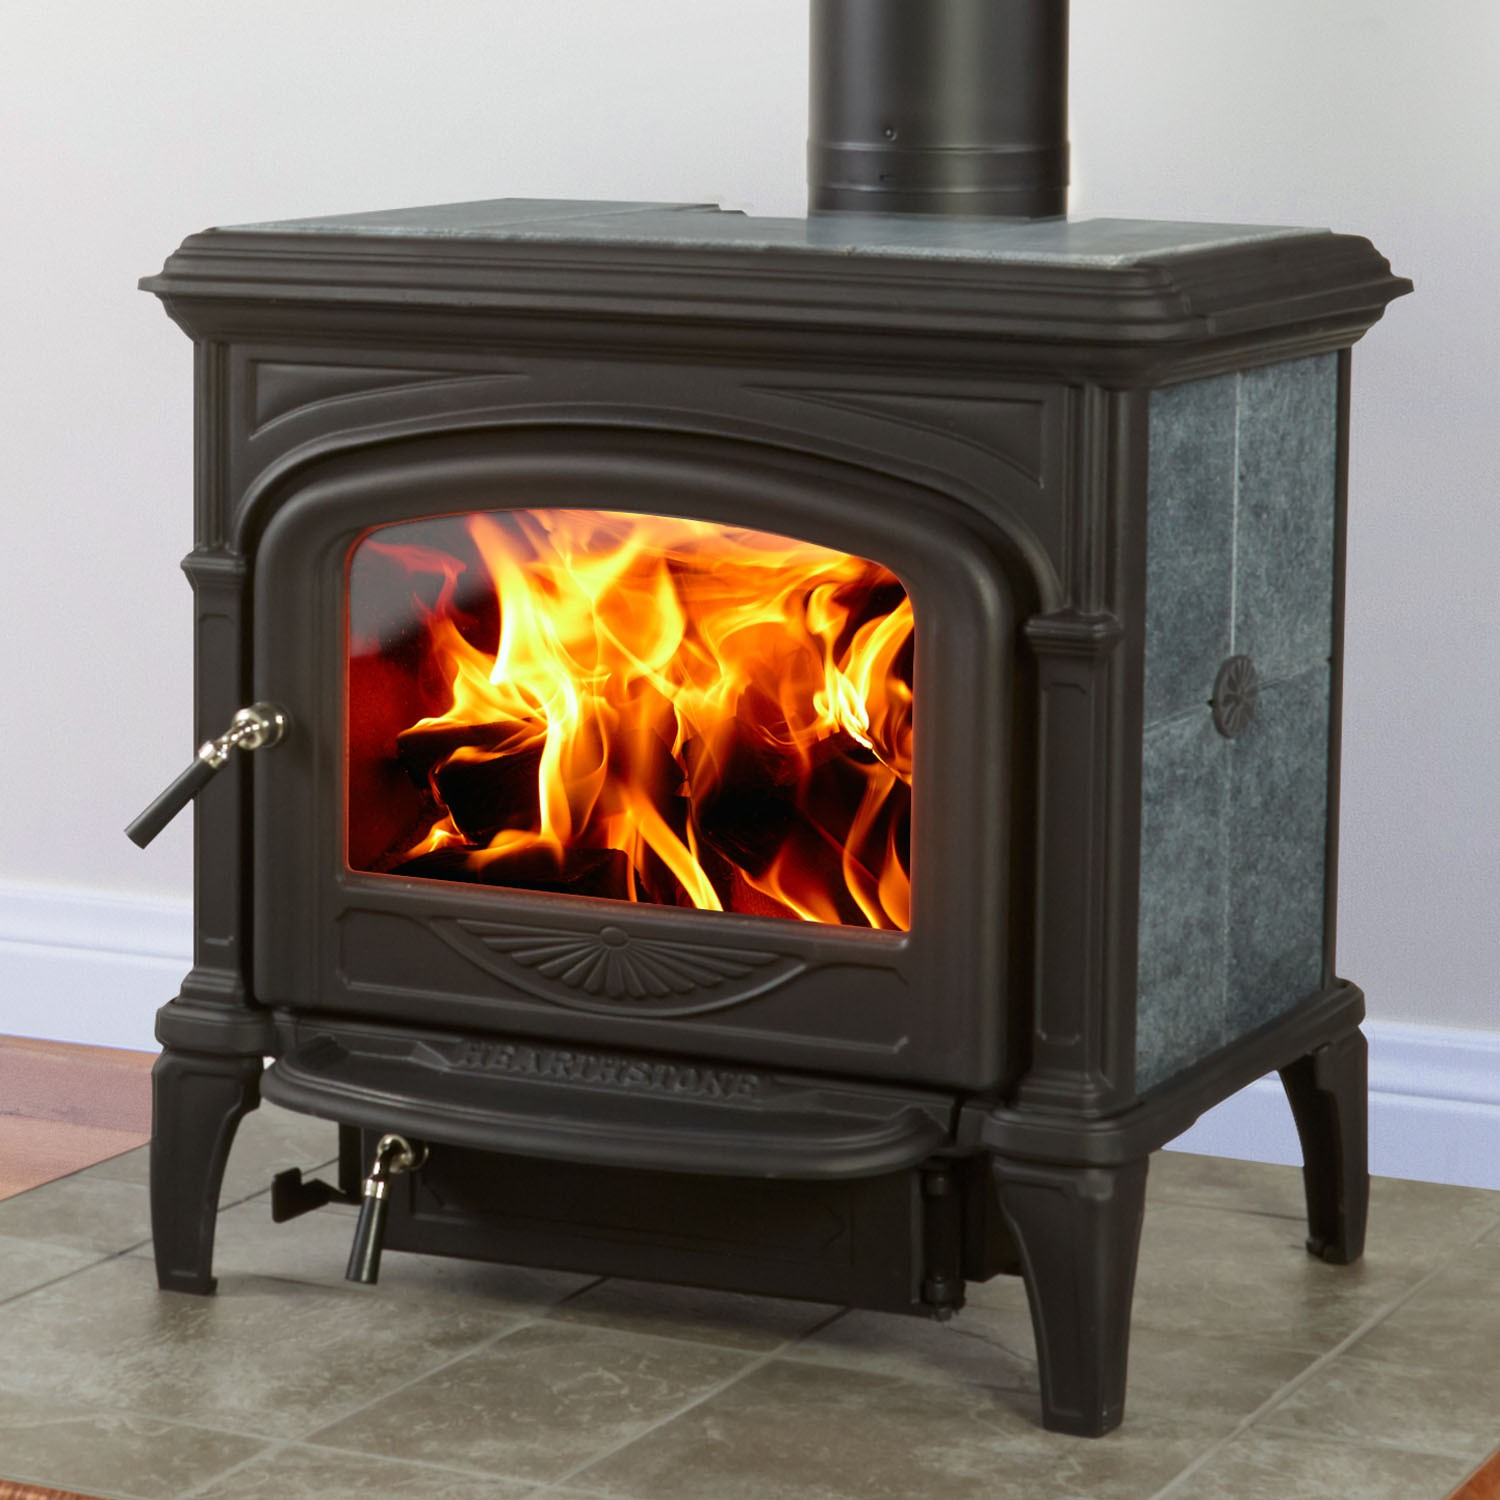 Hearthstone Phoenix 8612 Wood Stove - Hearthstone Wood Stoves - Review And Soapstone Options